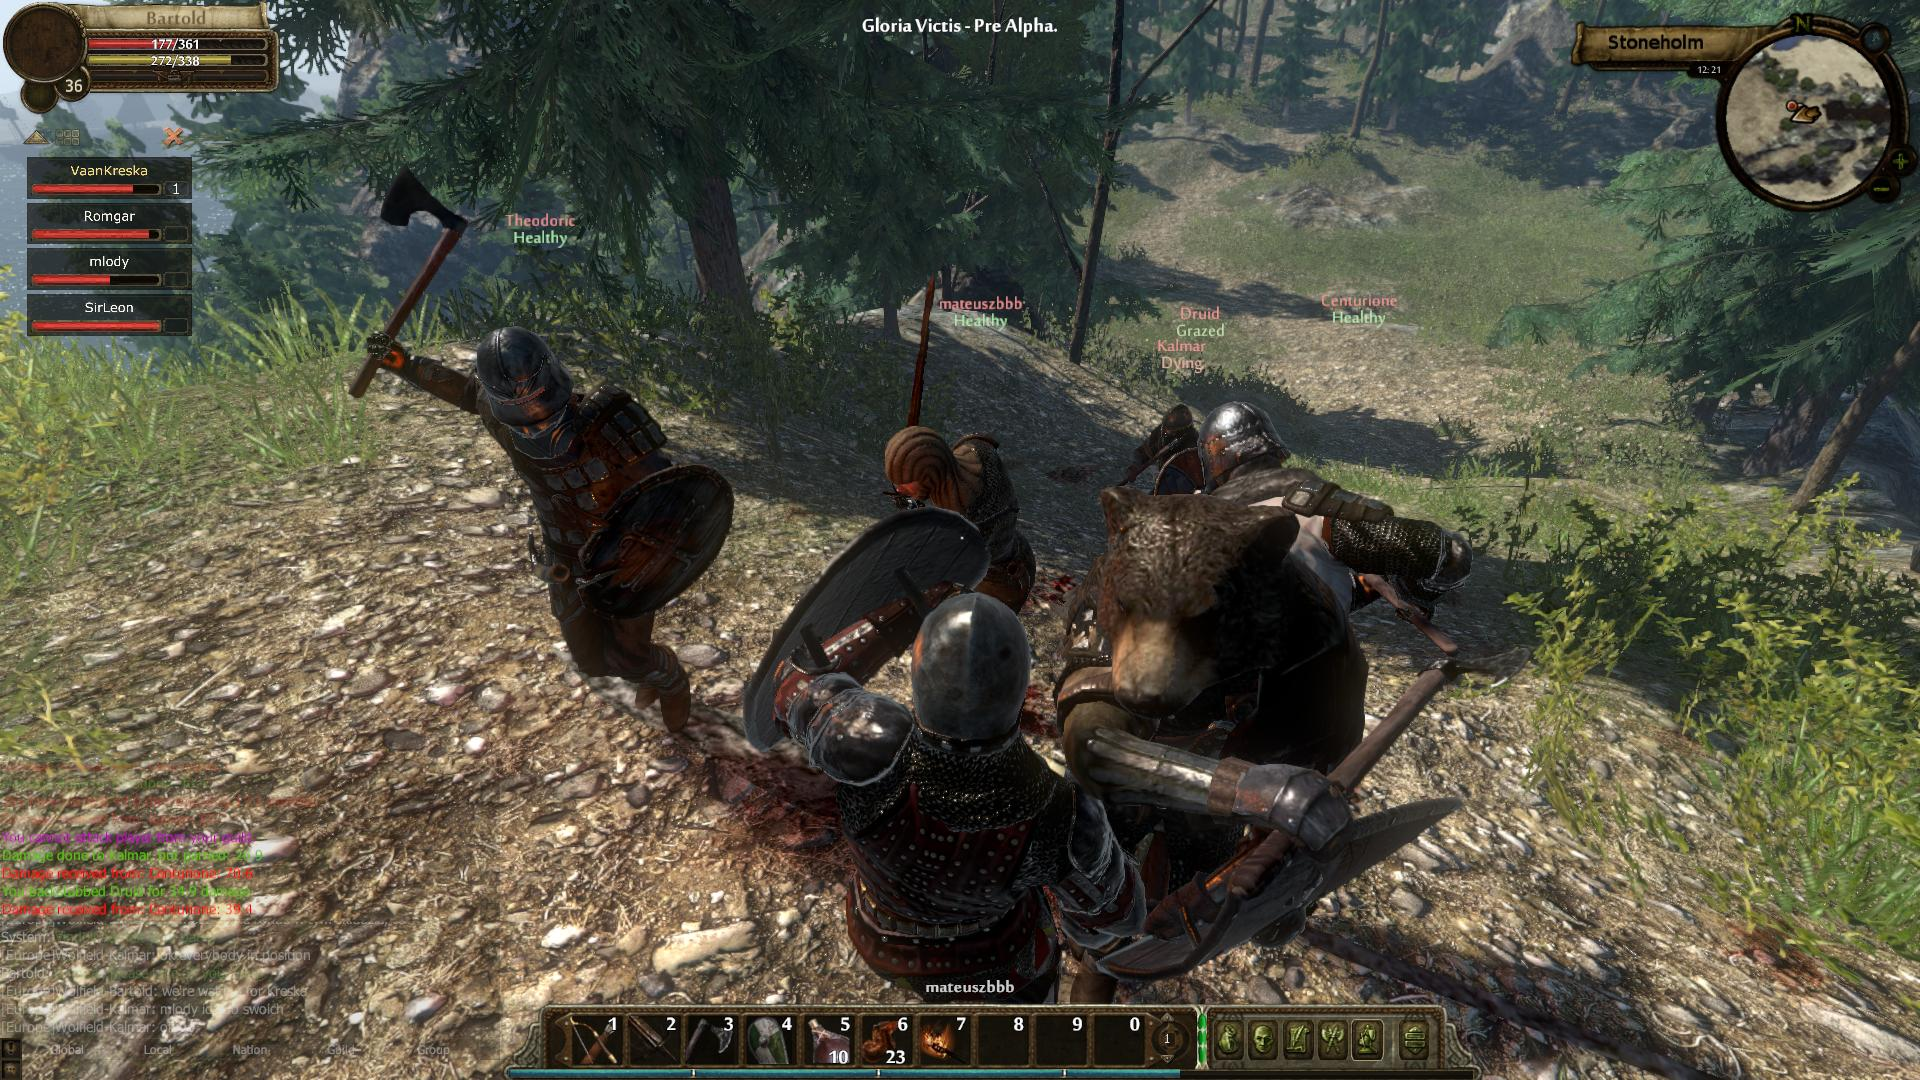 Low Fantasy Mmo Gloria Victis Launching June 8th On Steam